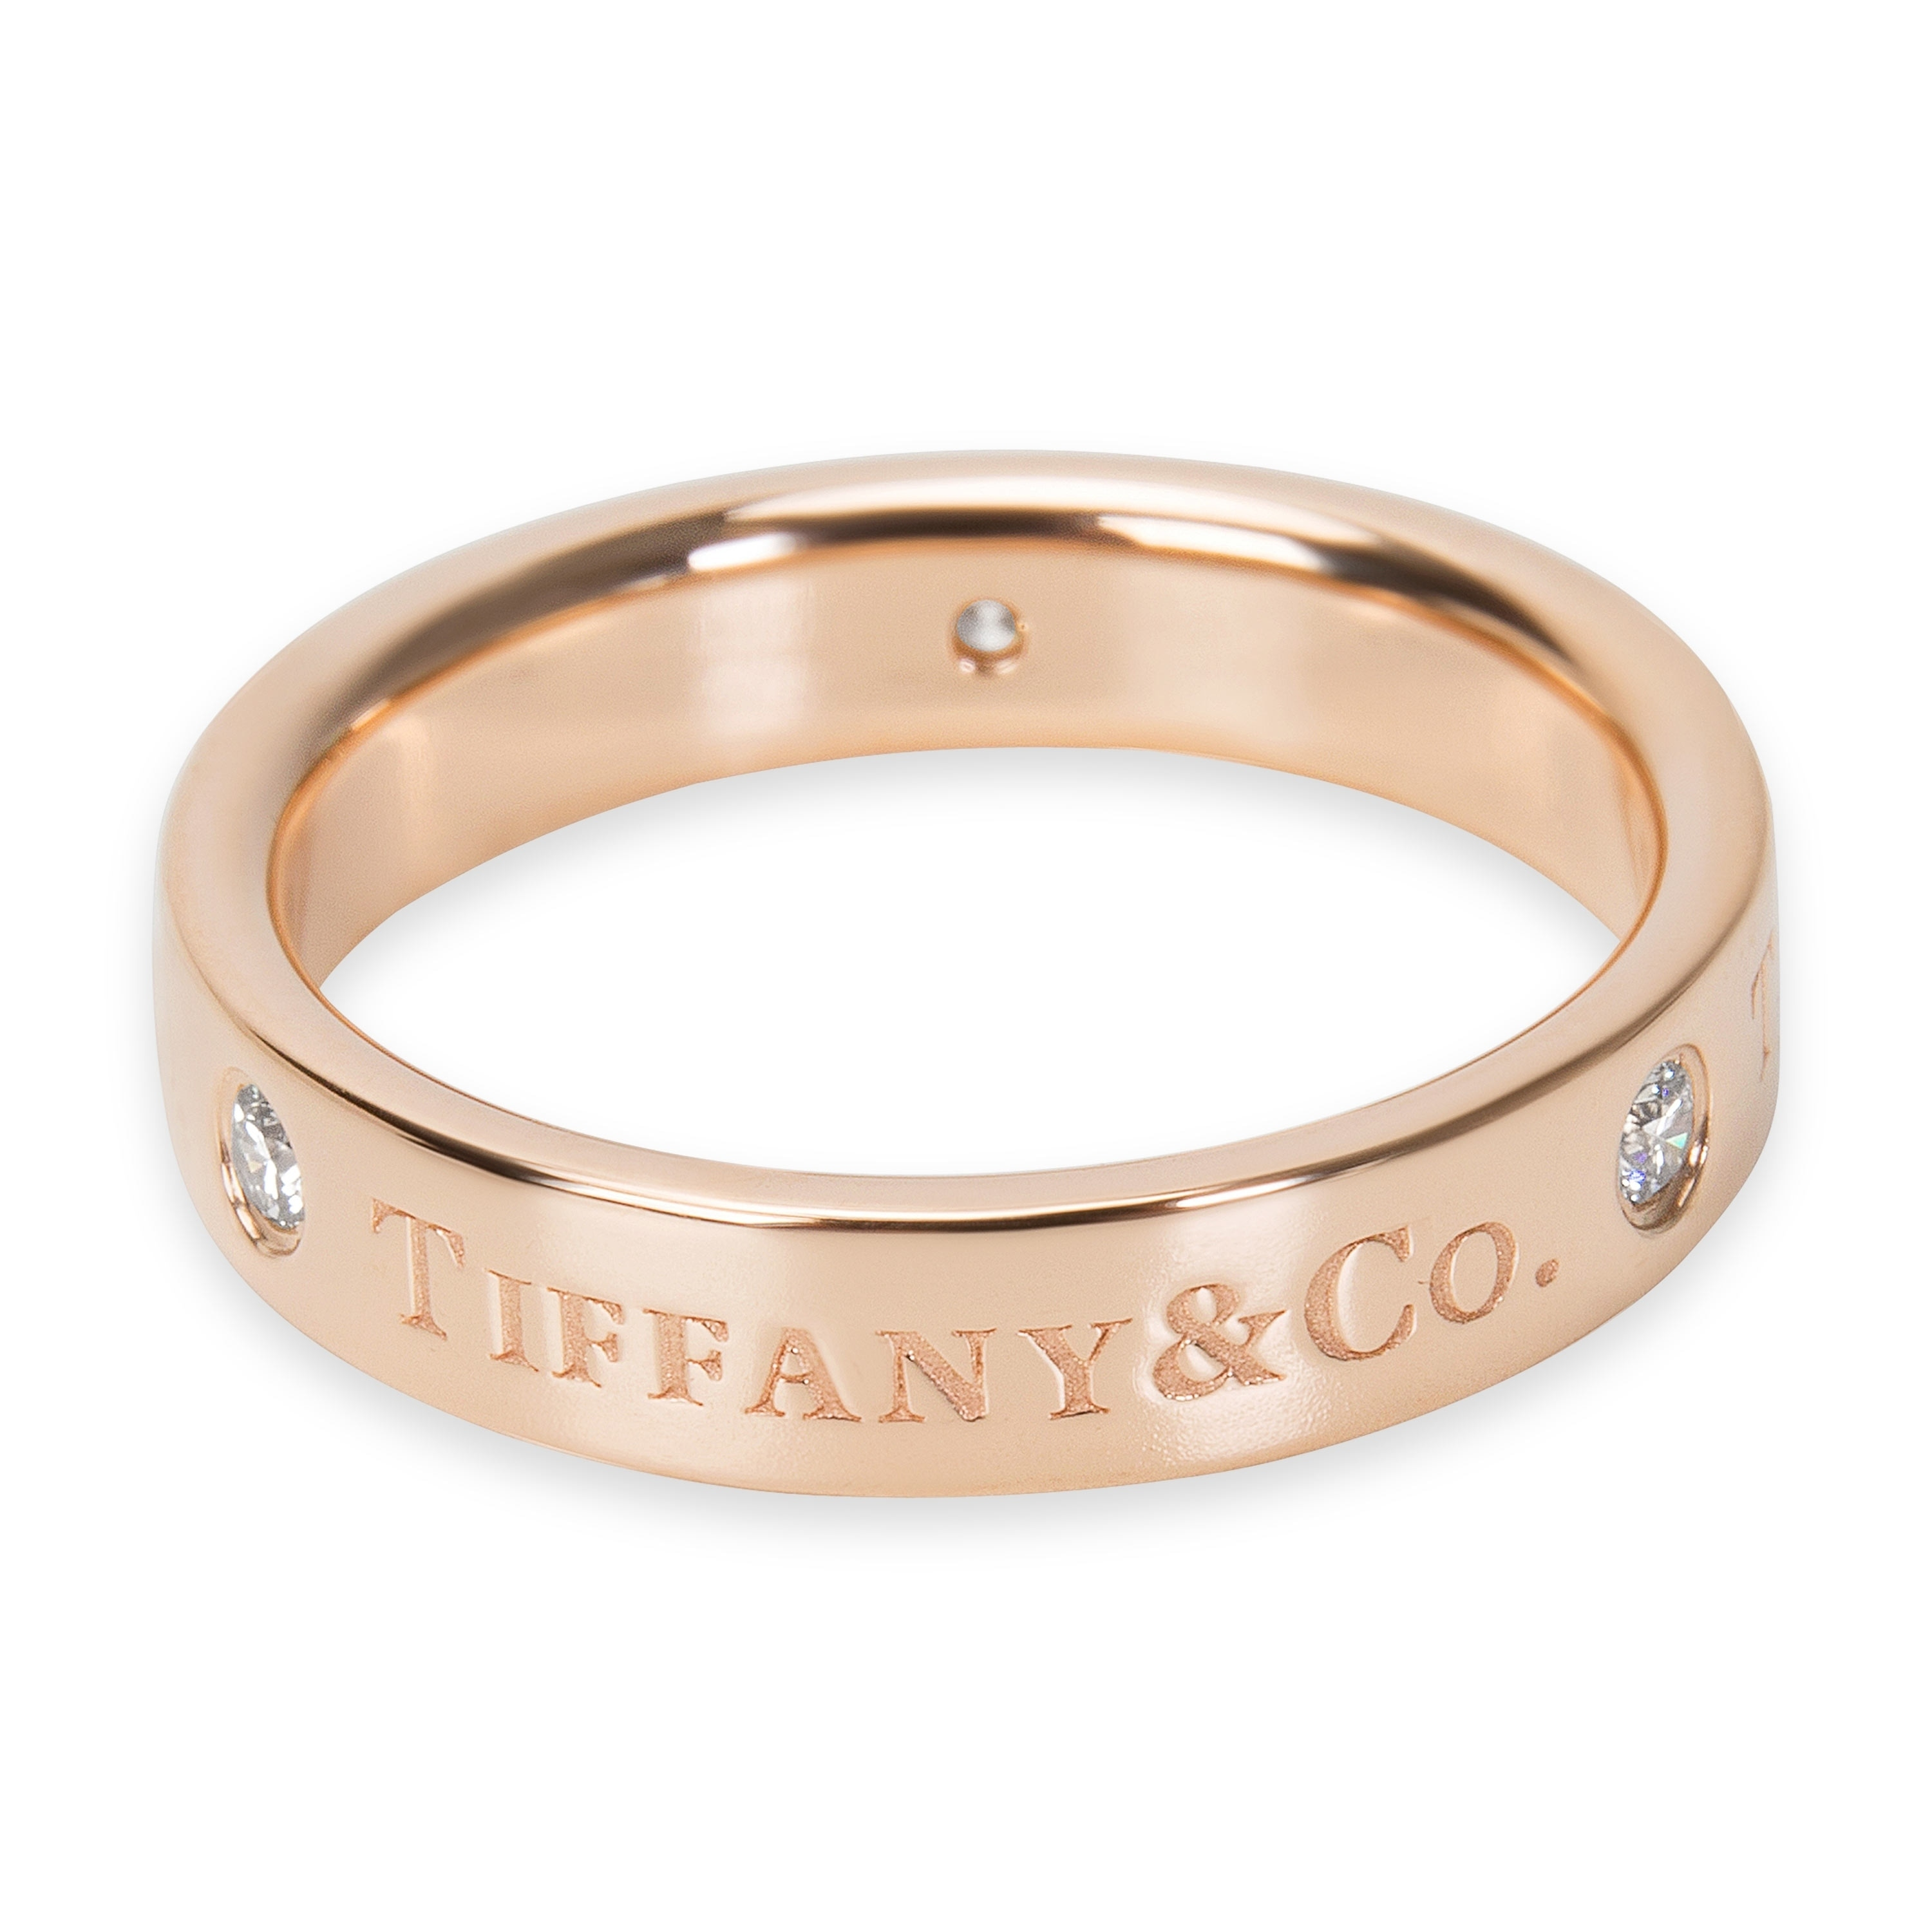 cfc3677b2a070 Pre-Owned Tiffany & Co. Signature Diamond 4mm Band in 18KT Rose Gold 0.07ctw